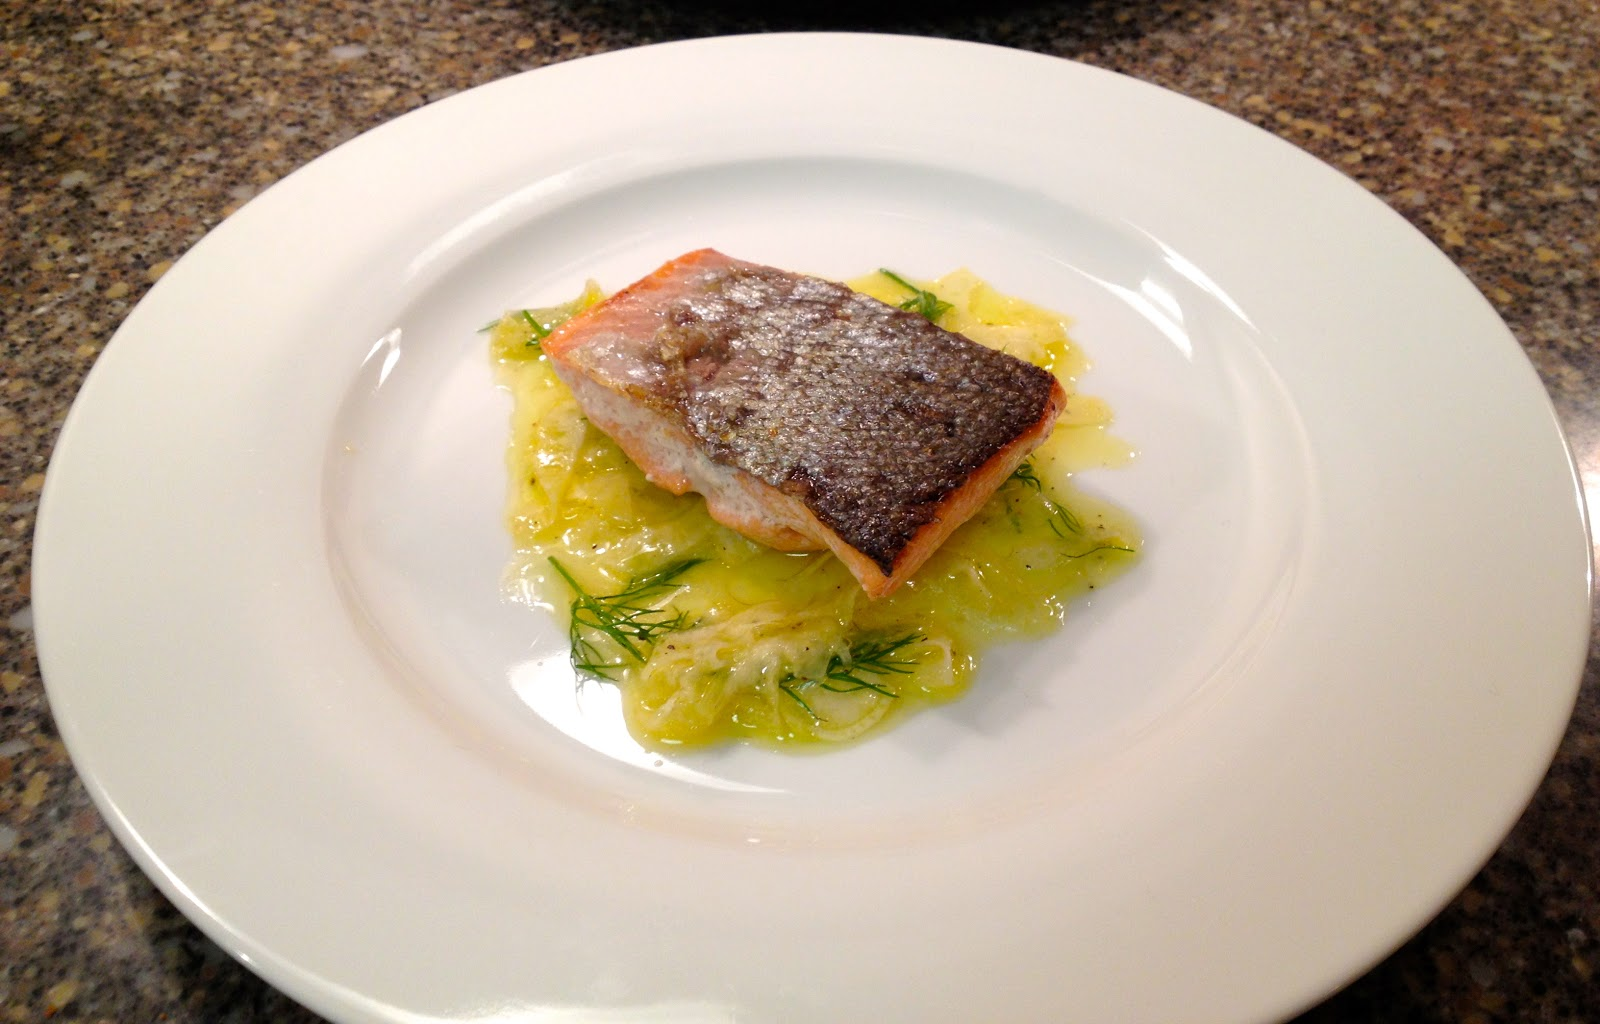 The Baked Alaska Project Pan Roasted Salmon With Fennel Salad